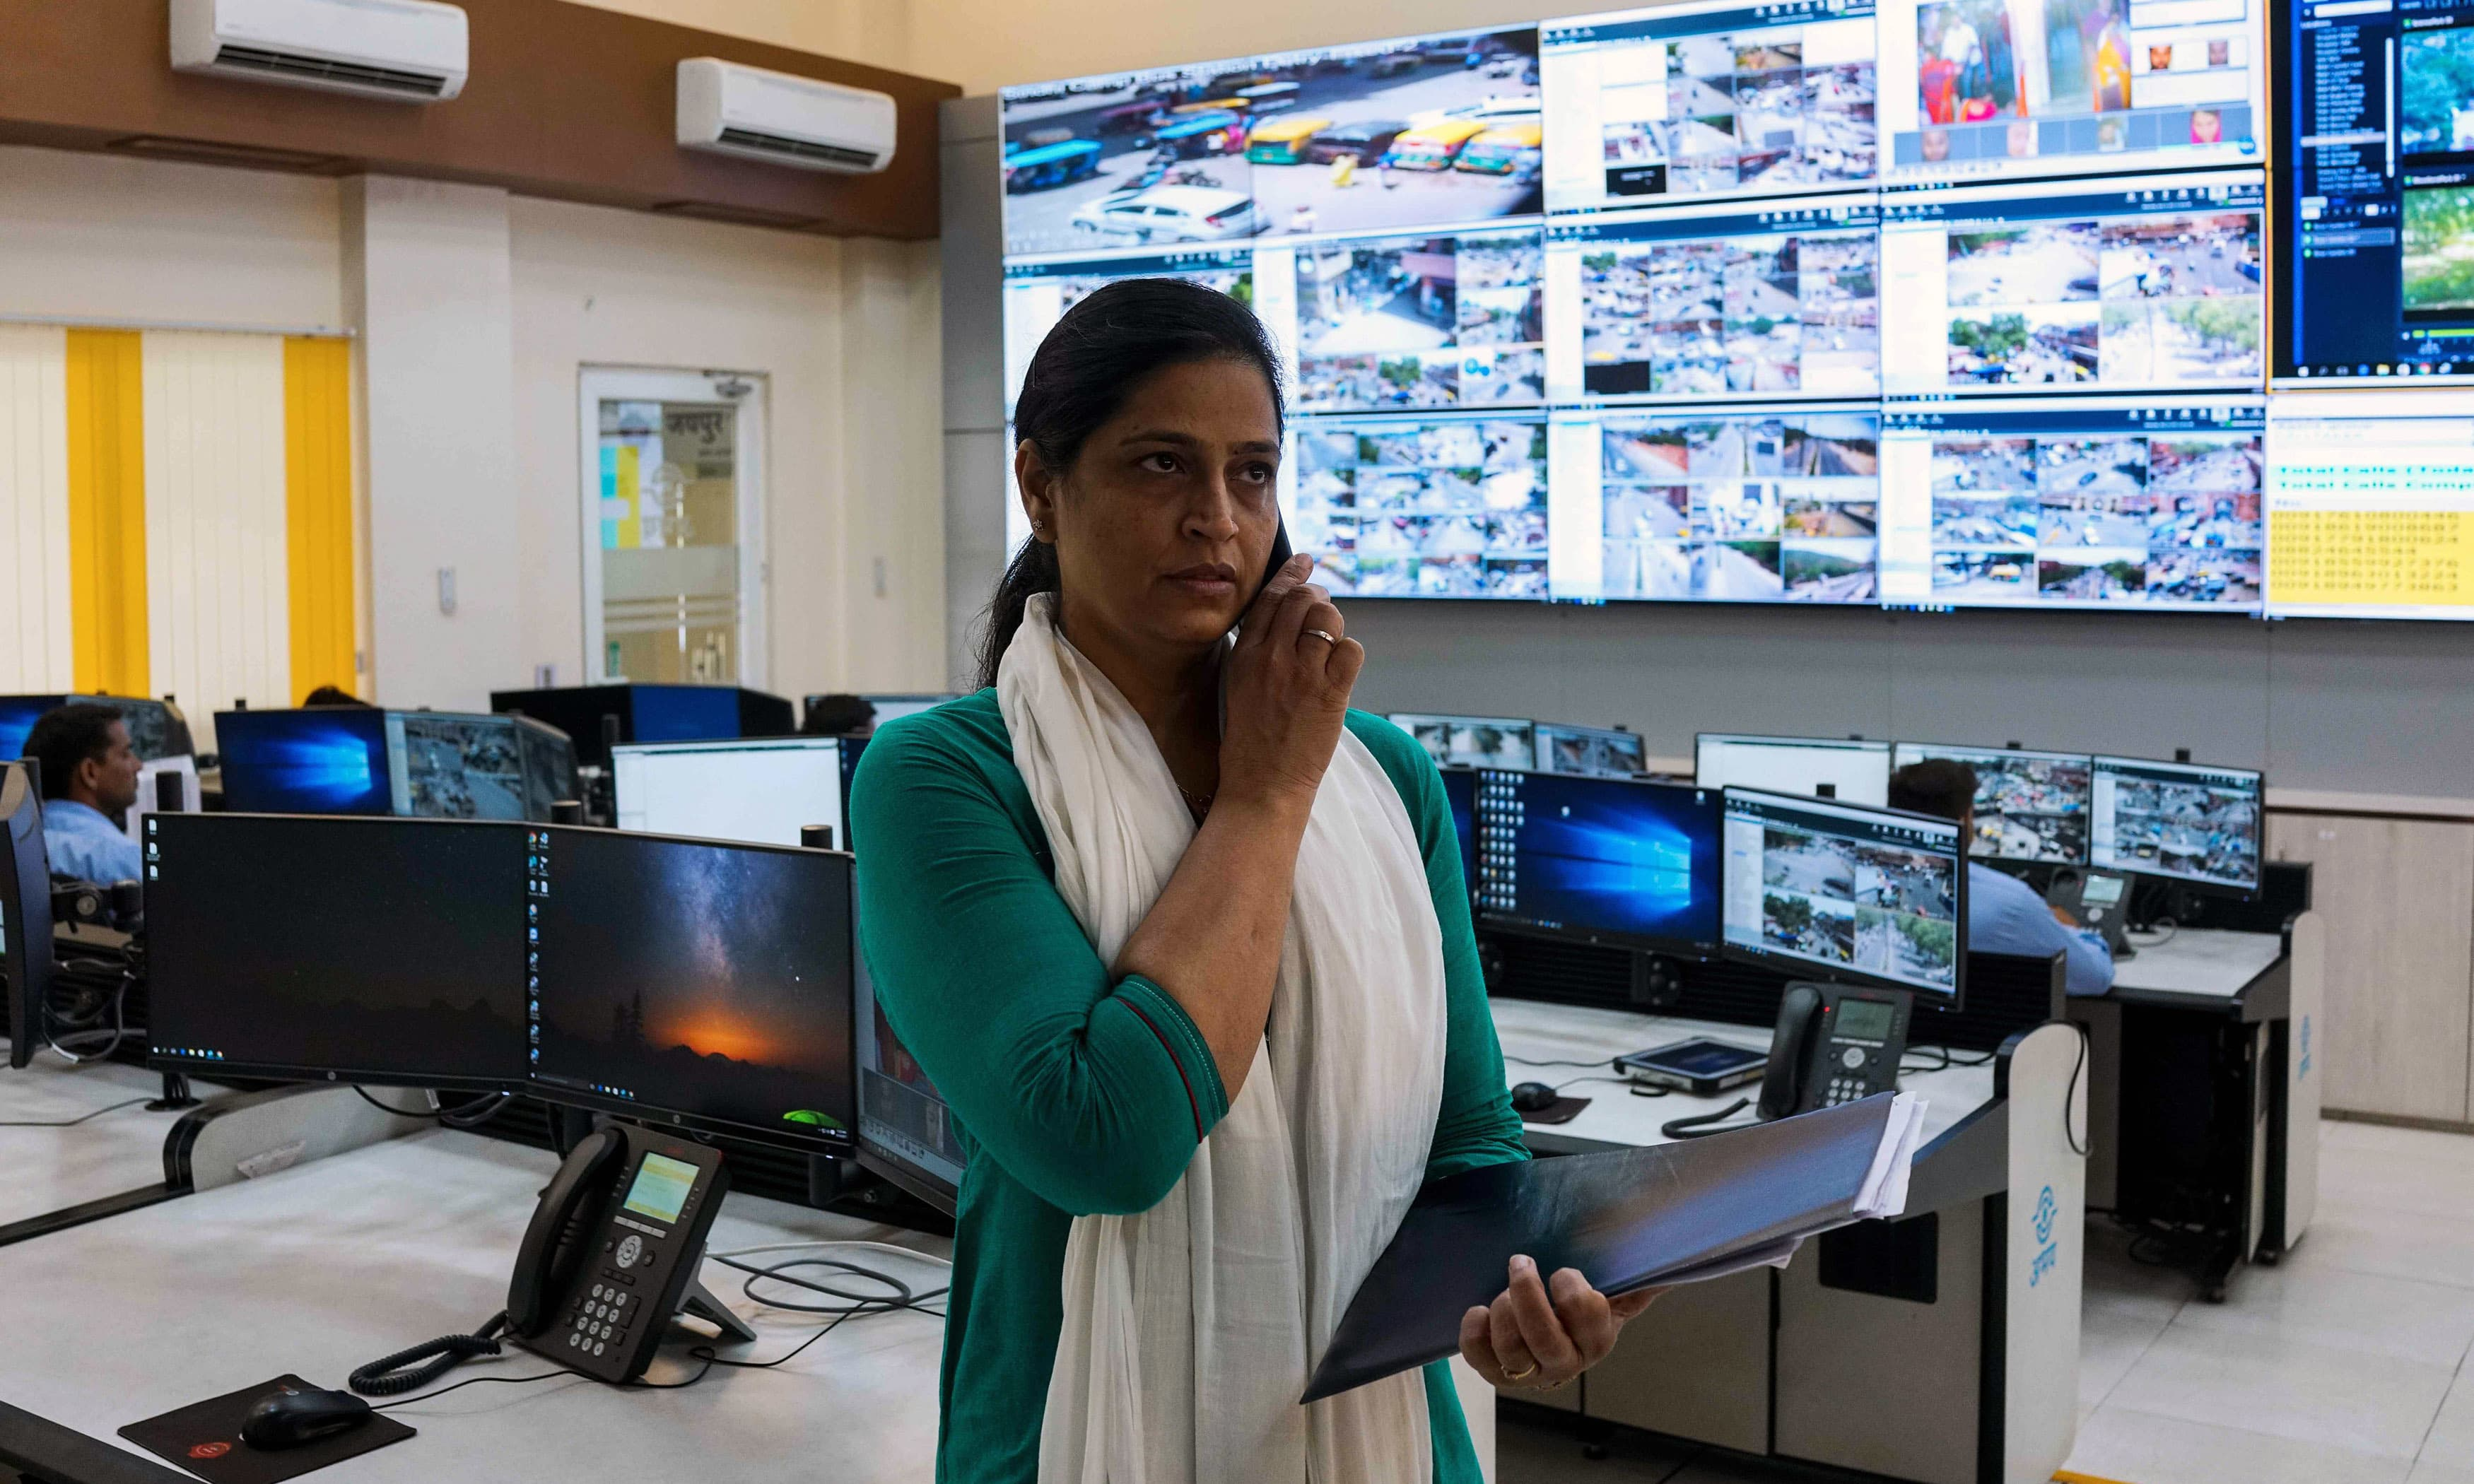 Kamal Shekhawat, head of the female police patrol unit, talks on the phone while standing inside the police command centre at the Jaipur Commissionate Headquarters. — AFP